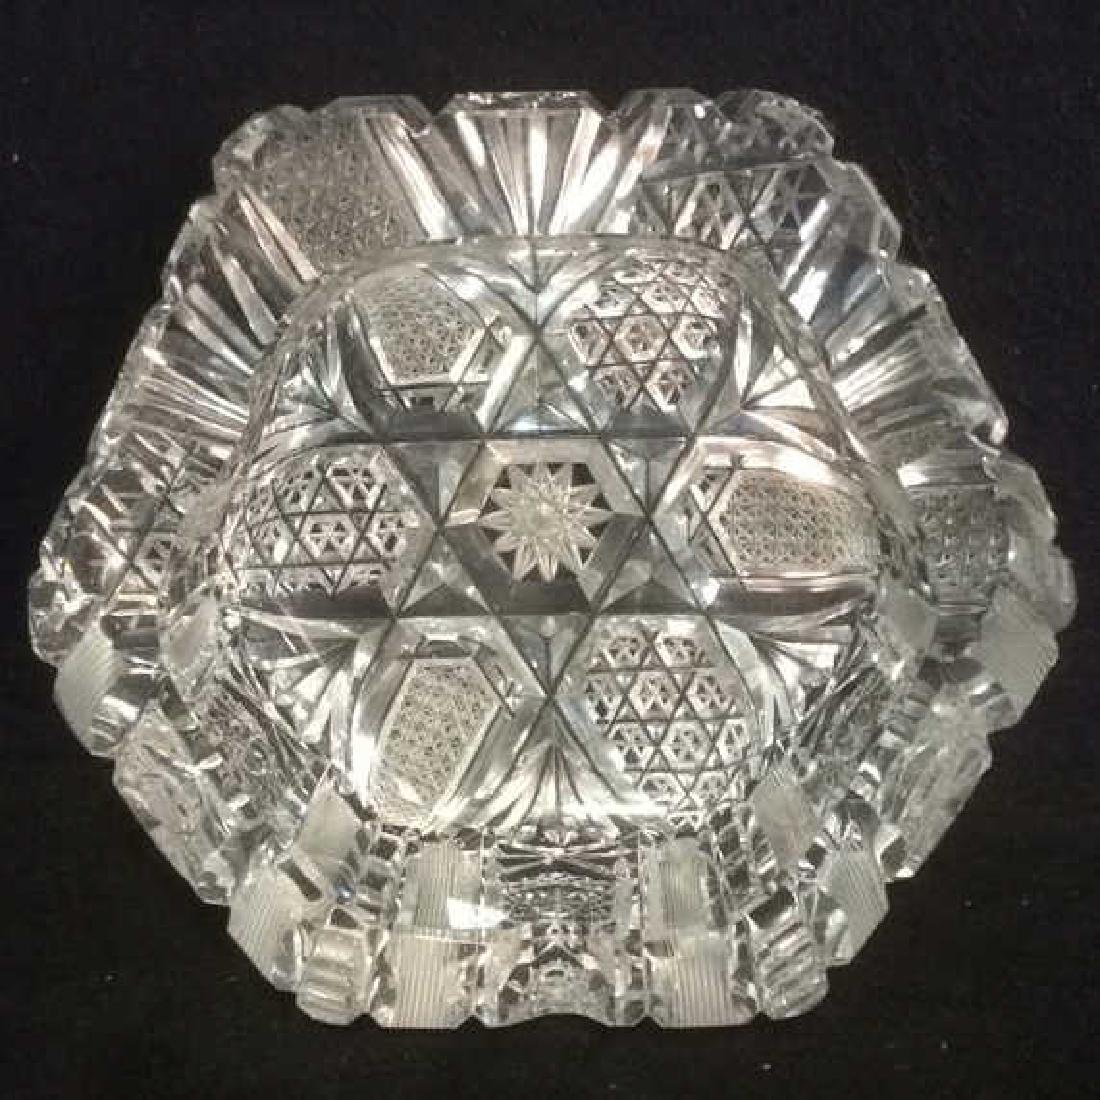 Intricately Cut Crystal Ash Trays